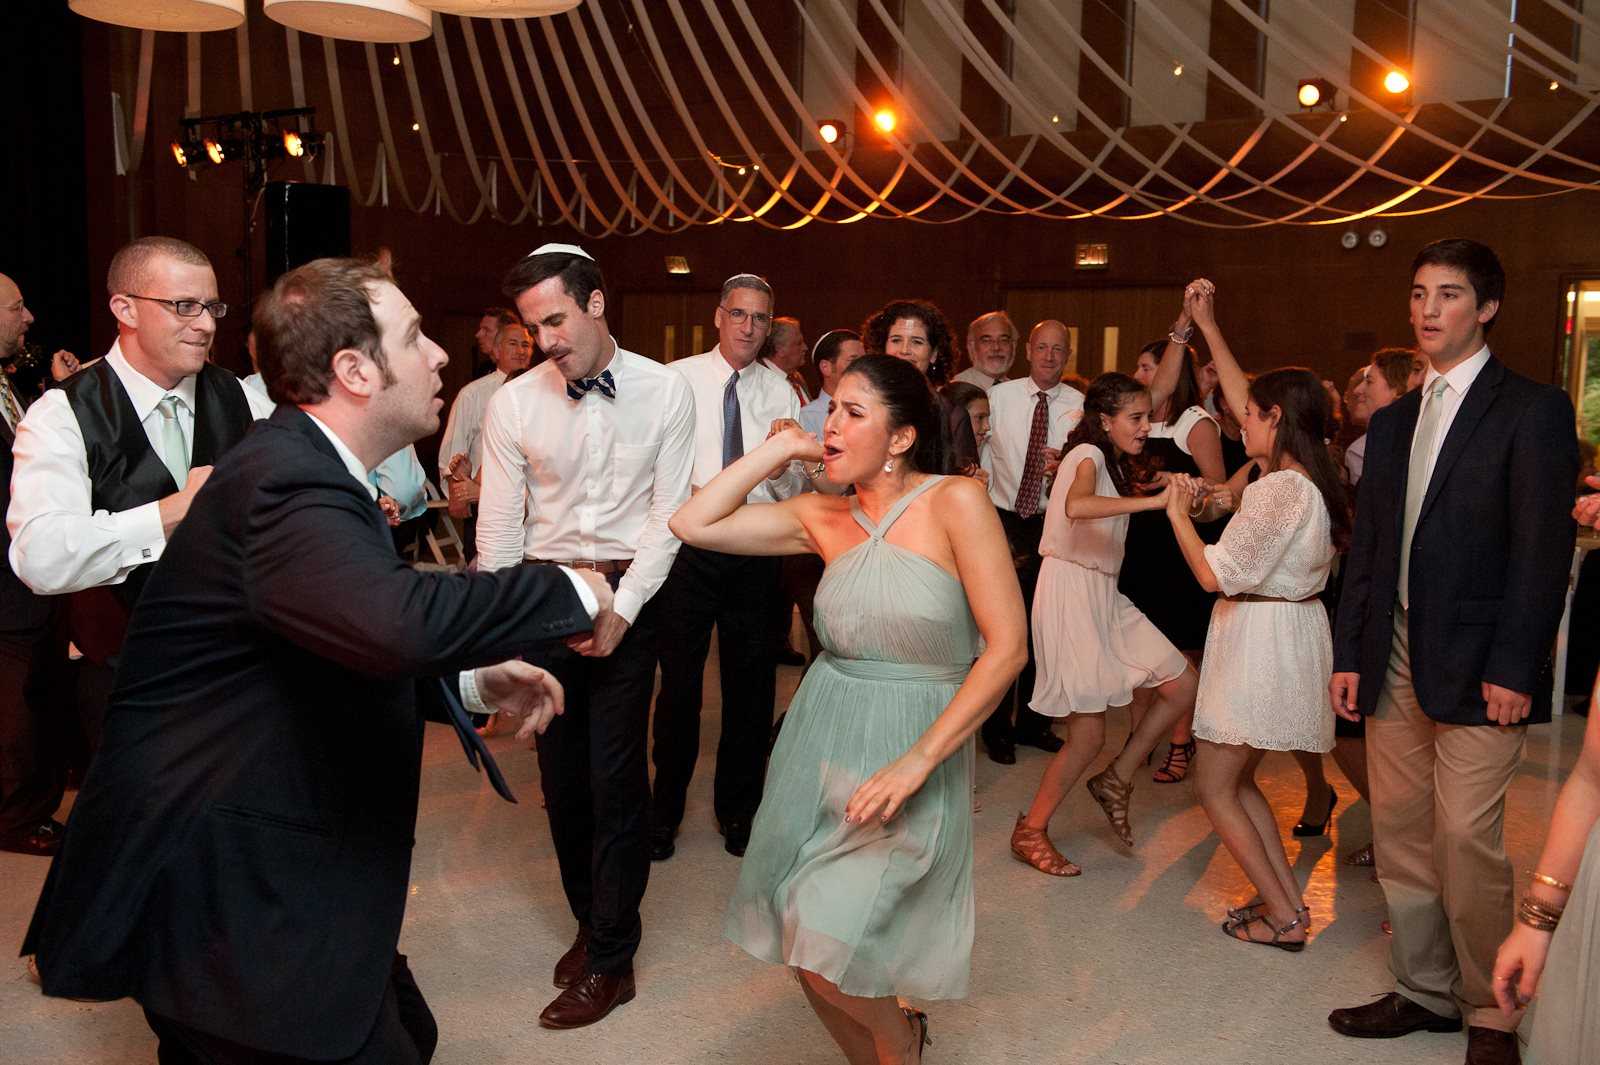 CONNETICUT JEWISH WEDDING 19